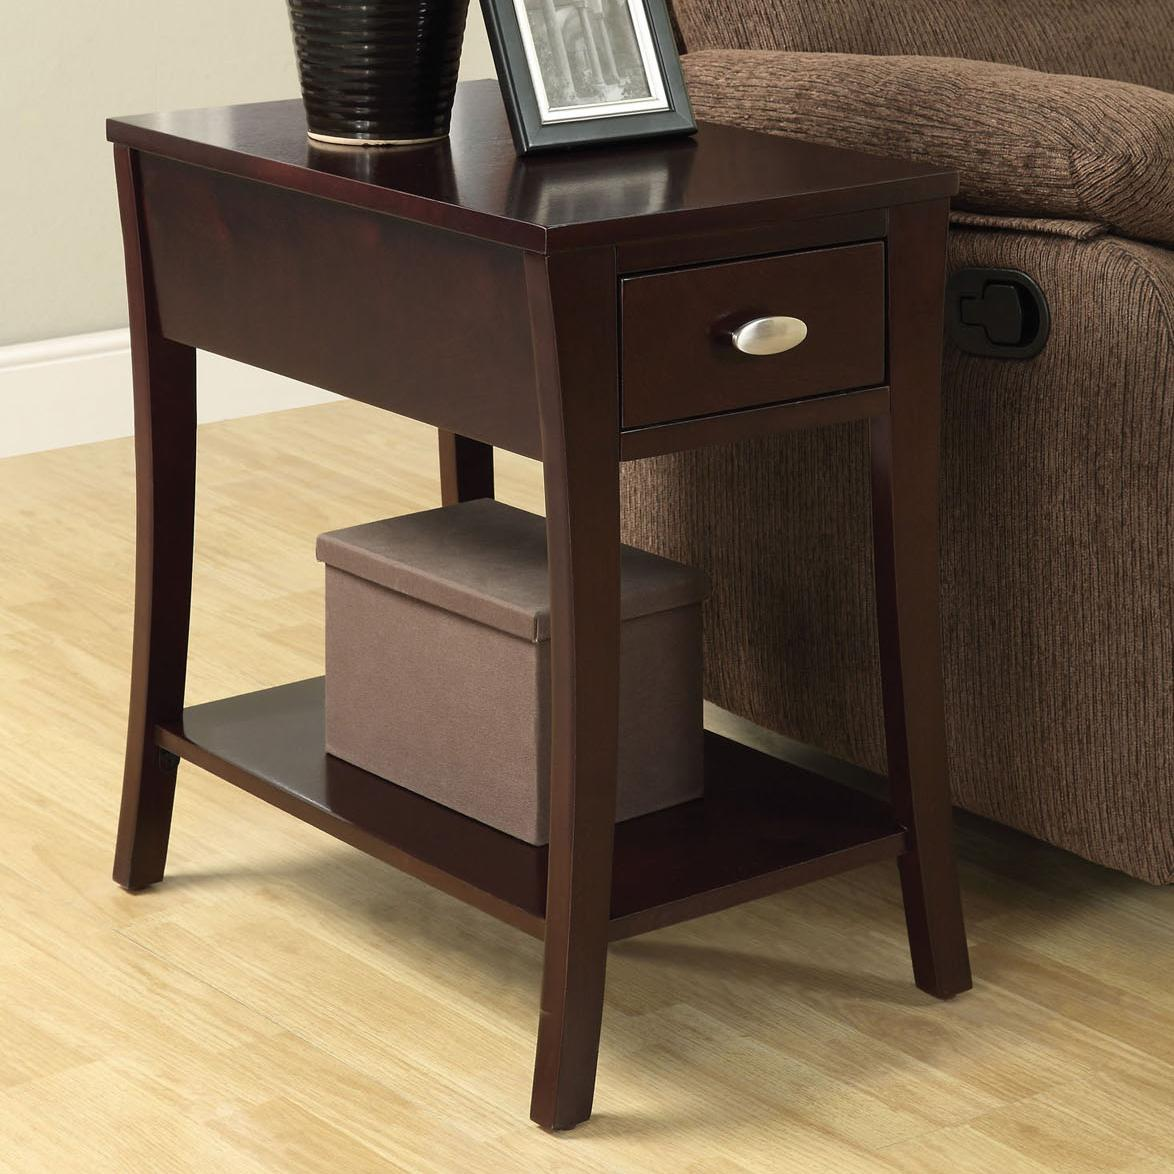 Acme Furniture Corin Side Table - Item Number: 80295